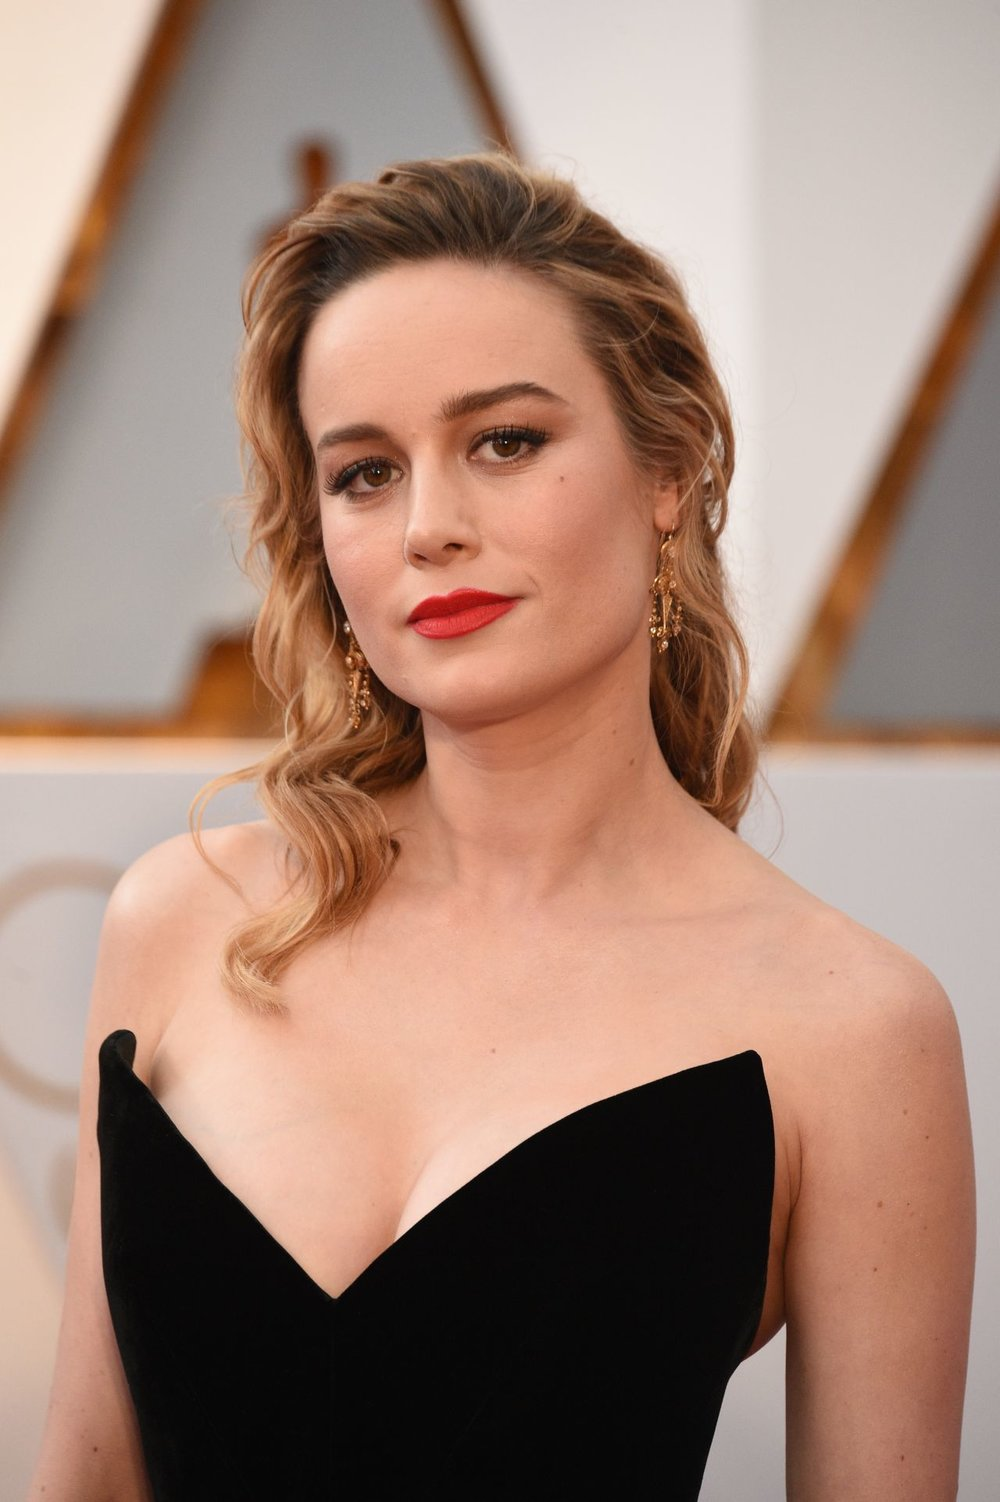 brie-larson-in-oscar-de-la-renta-at-2017-academy-awards-in-hollywood.5.jpg